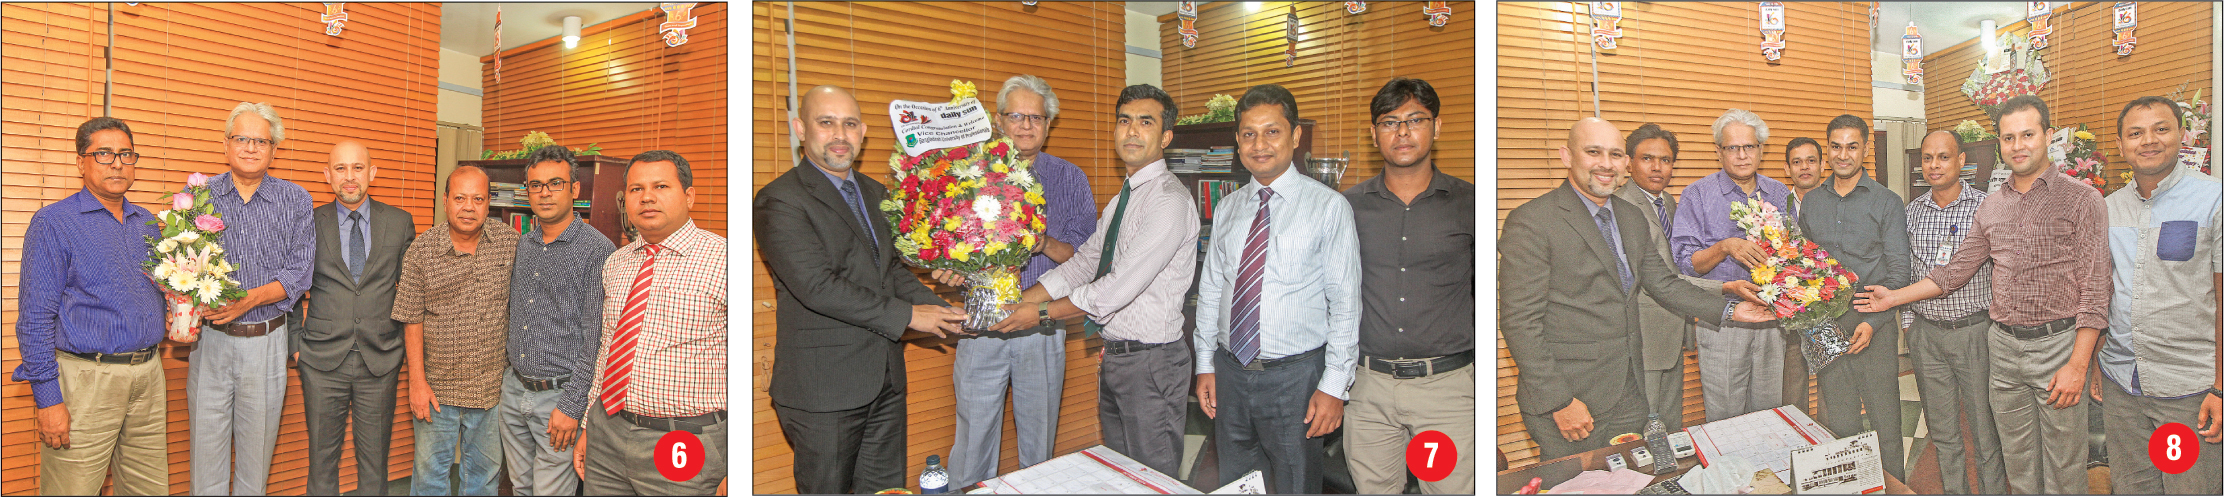 Itphot Postal 20Code 1 besides Gulshan Residential Area 243 moreover Daily Sun 6th Anniversary Celebrations in addition Top Two Newspapers Online Printed In furthermore Ahmed Akbar Sobhan News. on bashundhara residential area